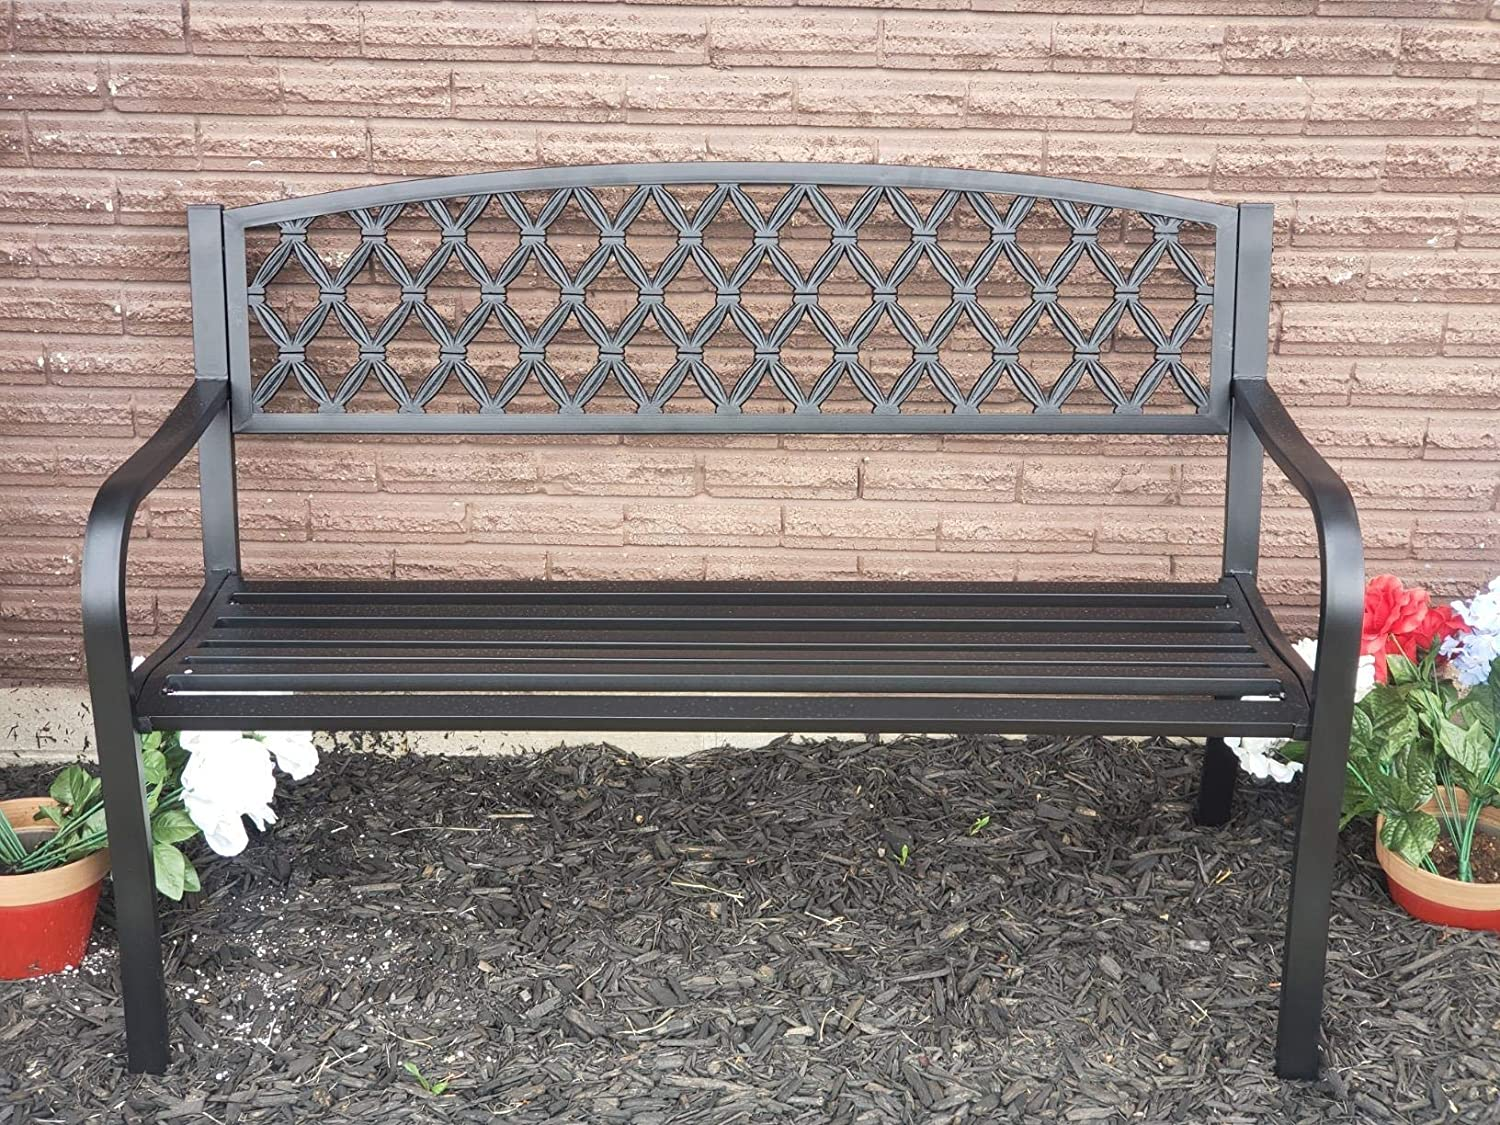 Patio Garden Bench Park Bench Loveseats for Outdoor Yard Porch, Patio, Garden, Lawn, Balcony, Backyard and Indoor Work Entryway, Metal Material Easy to Assemble Best Loveseats - 50